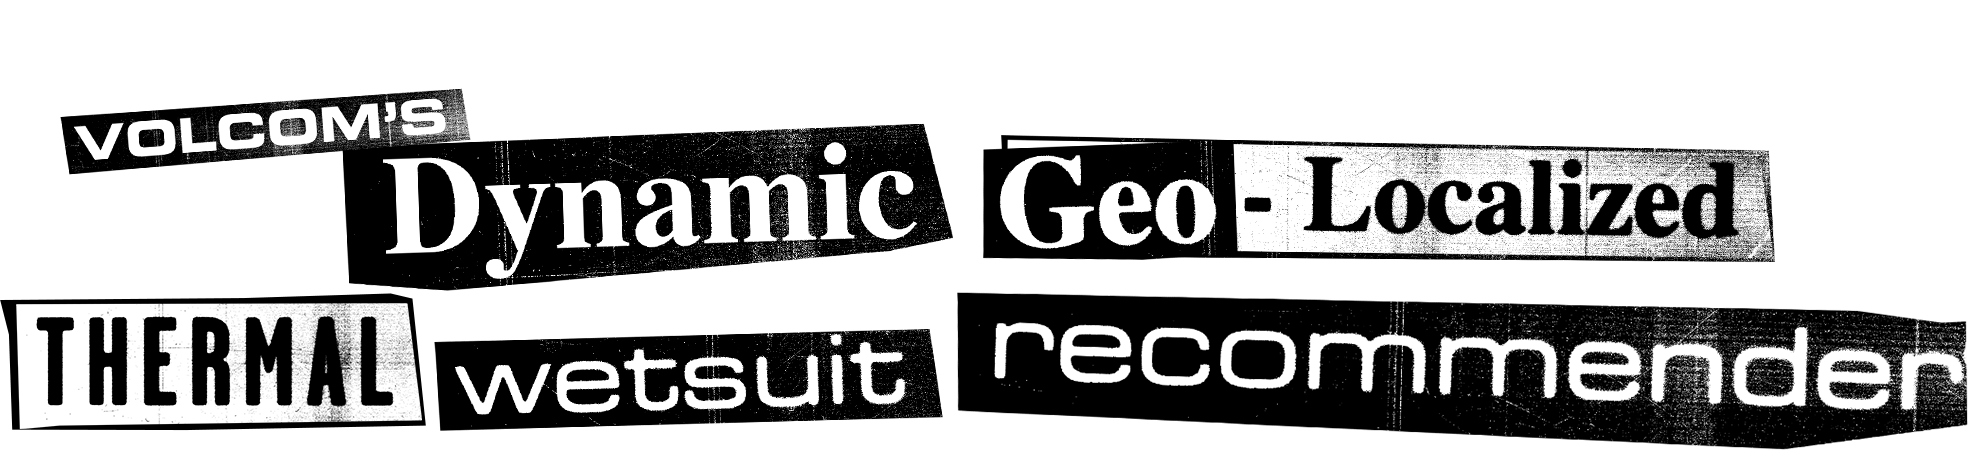 volcom's dynamic geo-localized thermo wetsuit recommender